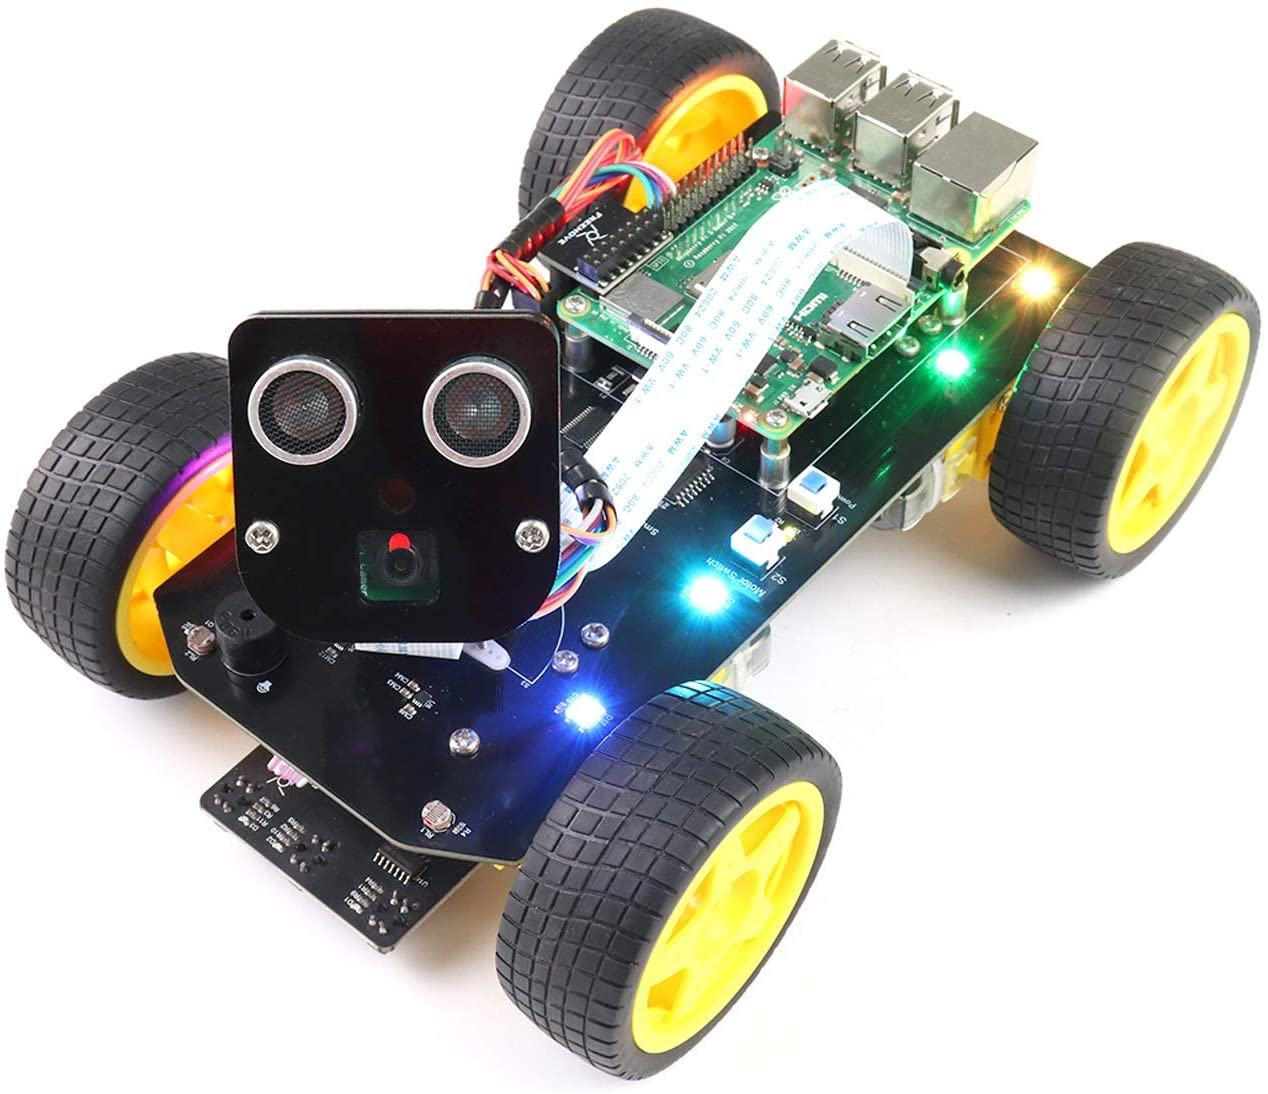 Freenove 4WD Smart Car Kit for Raspberry Pi 4 B 3 B+ B A+, Face Tracking, Line Tracking, Light Tracing, Obstacle Avoidance, Colorful Light, Camera Ultrasonic Servo Wireless RC